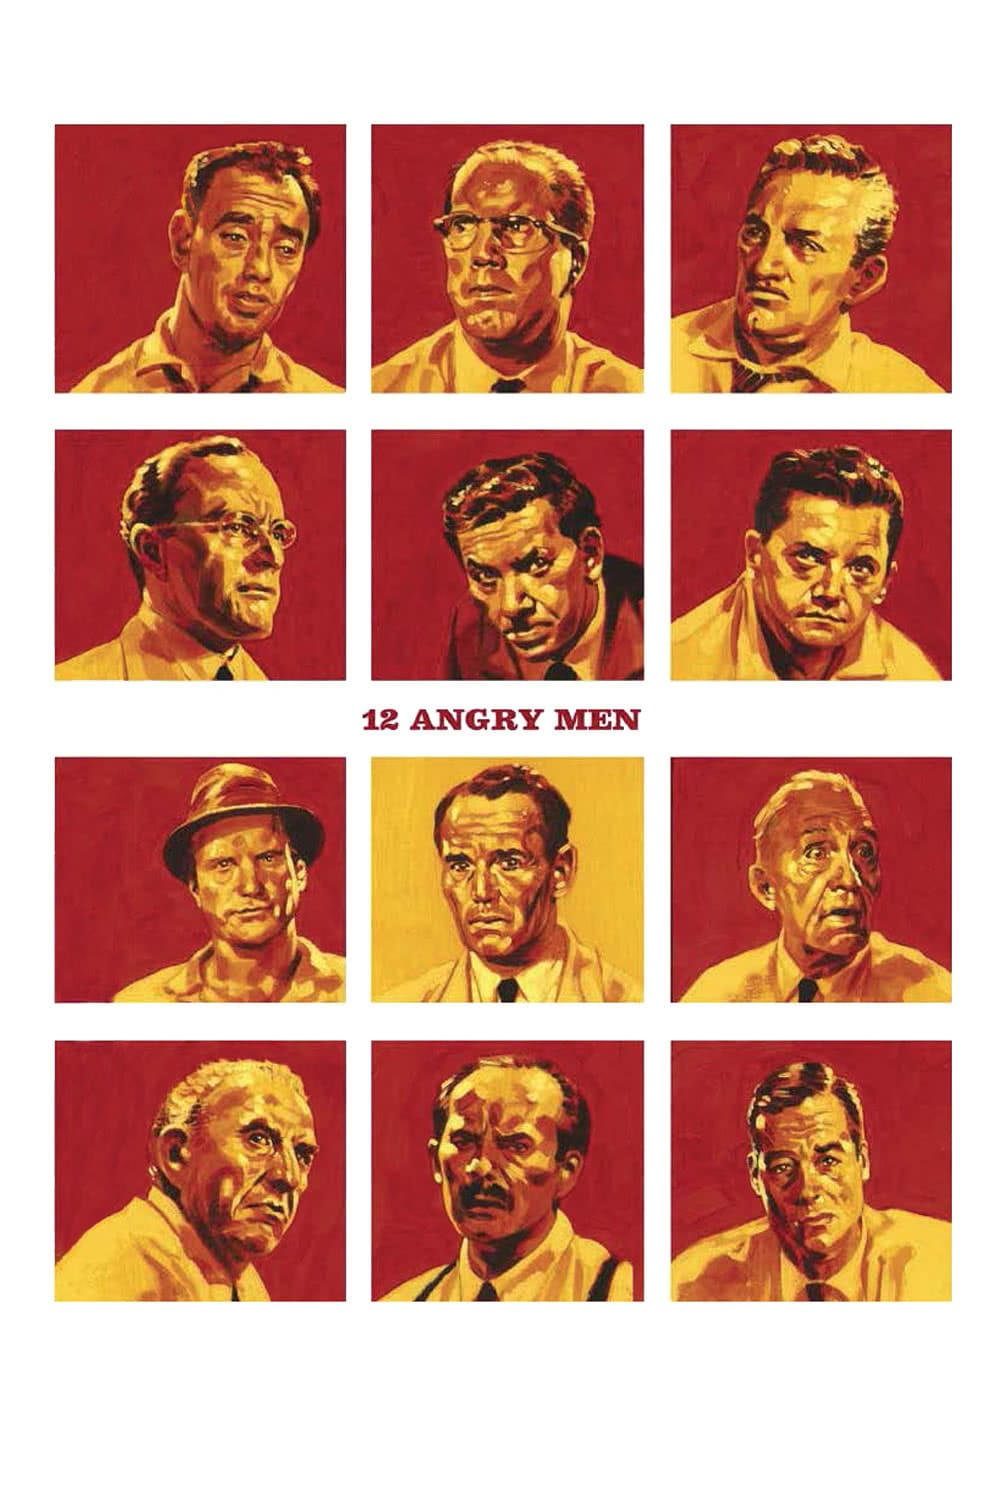 12 angry men synopsis Immediately download the twelve angry men summary, chapter-by-chapter analysis, book notes, essays, quotes, character descriptions, lesson plans, and more - everything you need for studying or teaching twelve angry men.